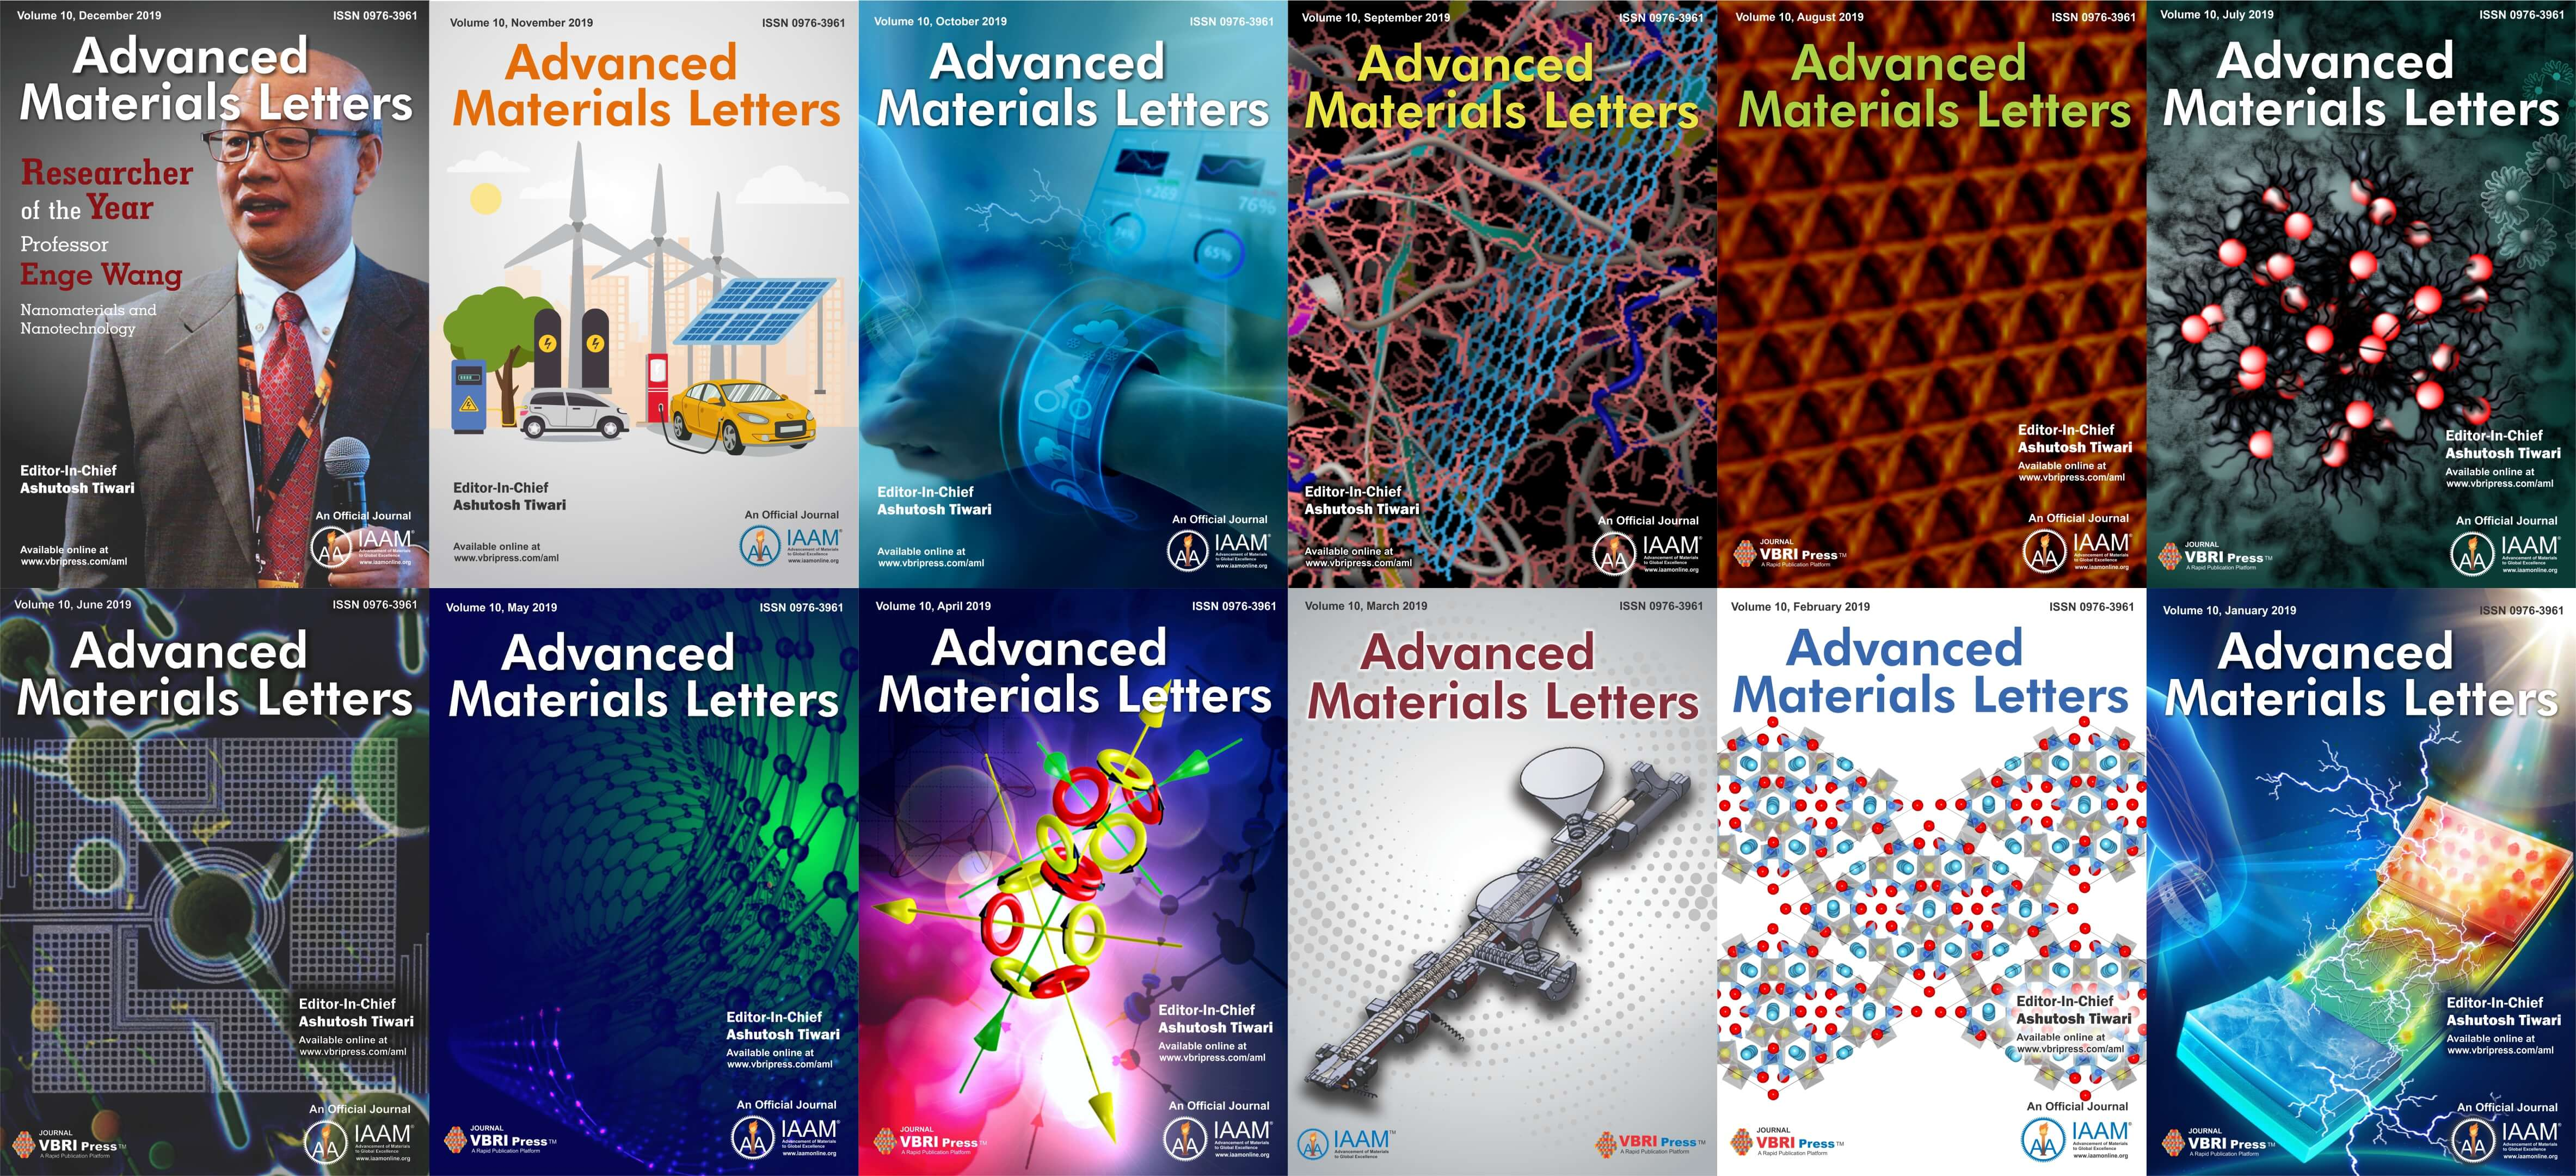 Cover images of Advanced Materials Letters published in 2019 | IAAM